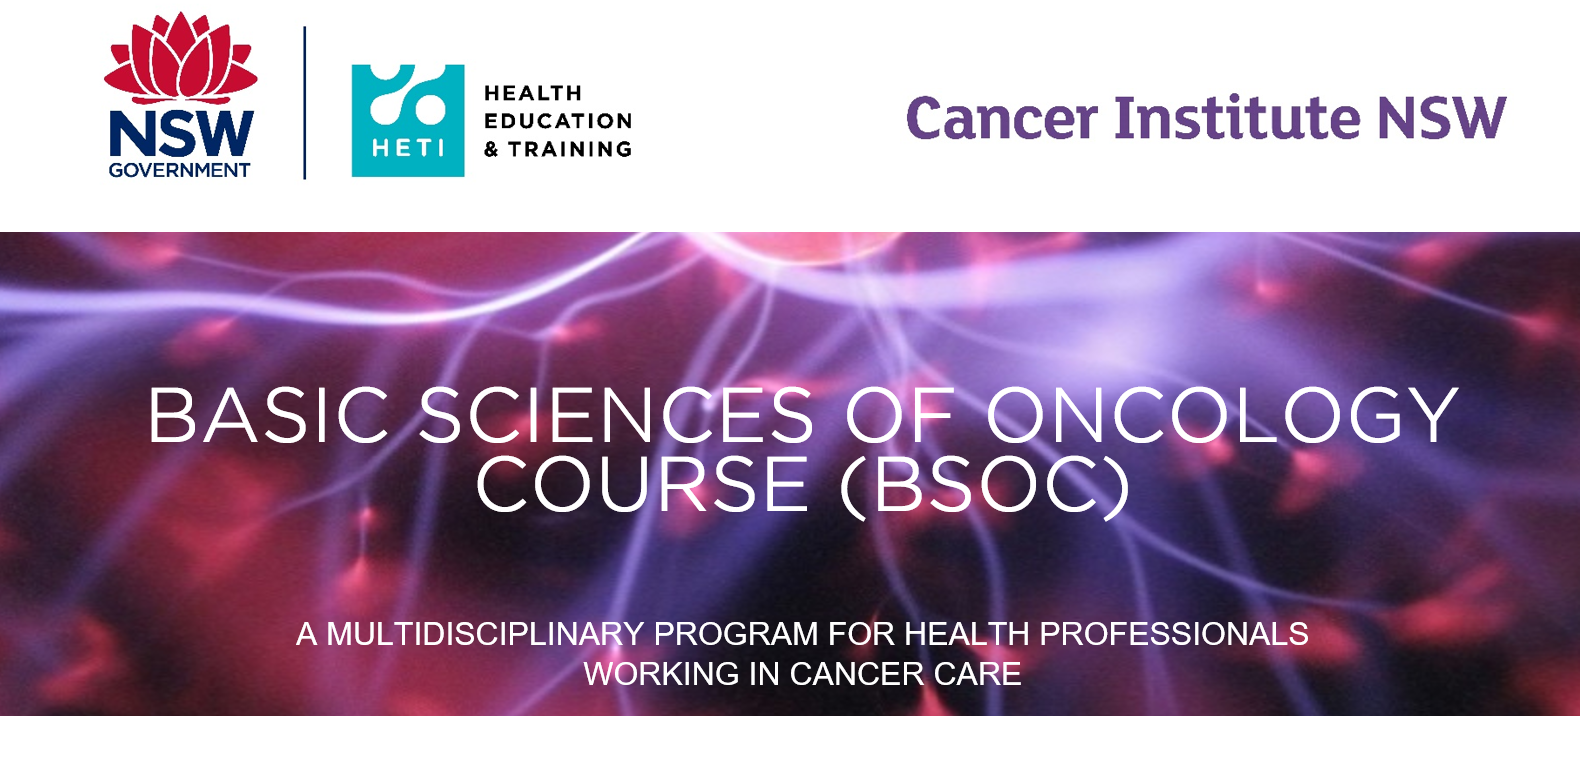 Basic Sciences in Oncology Course (BSOC) 2019